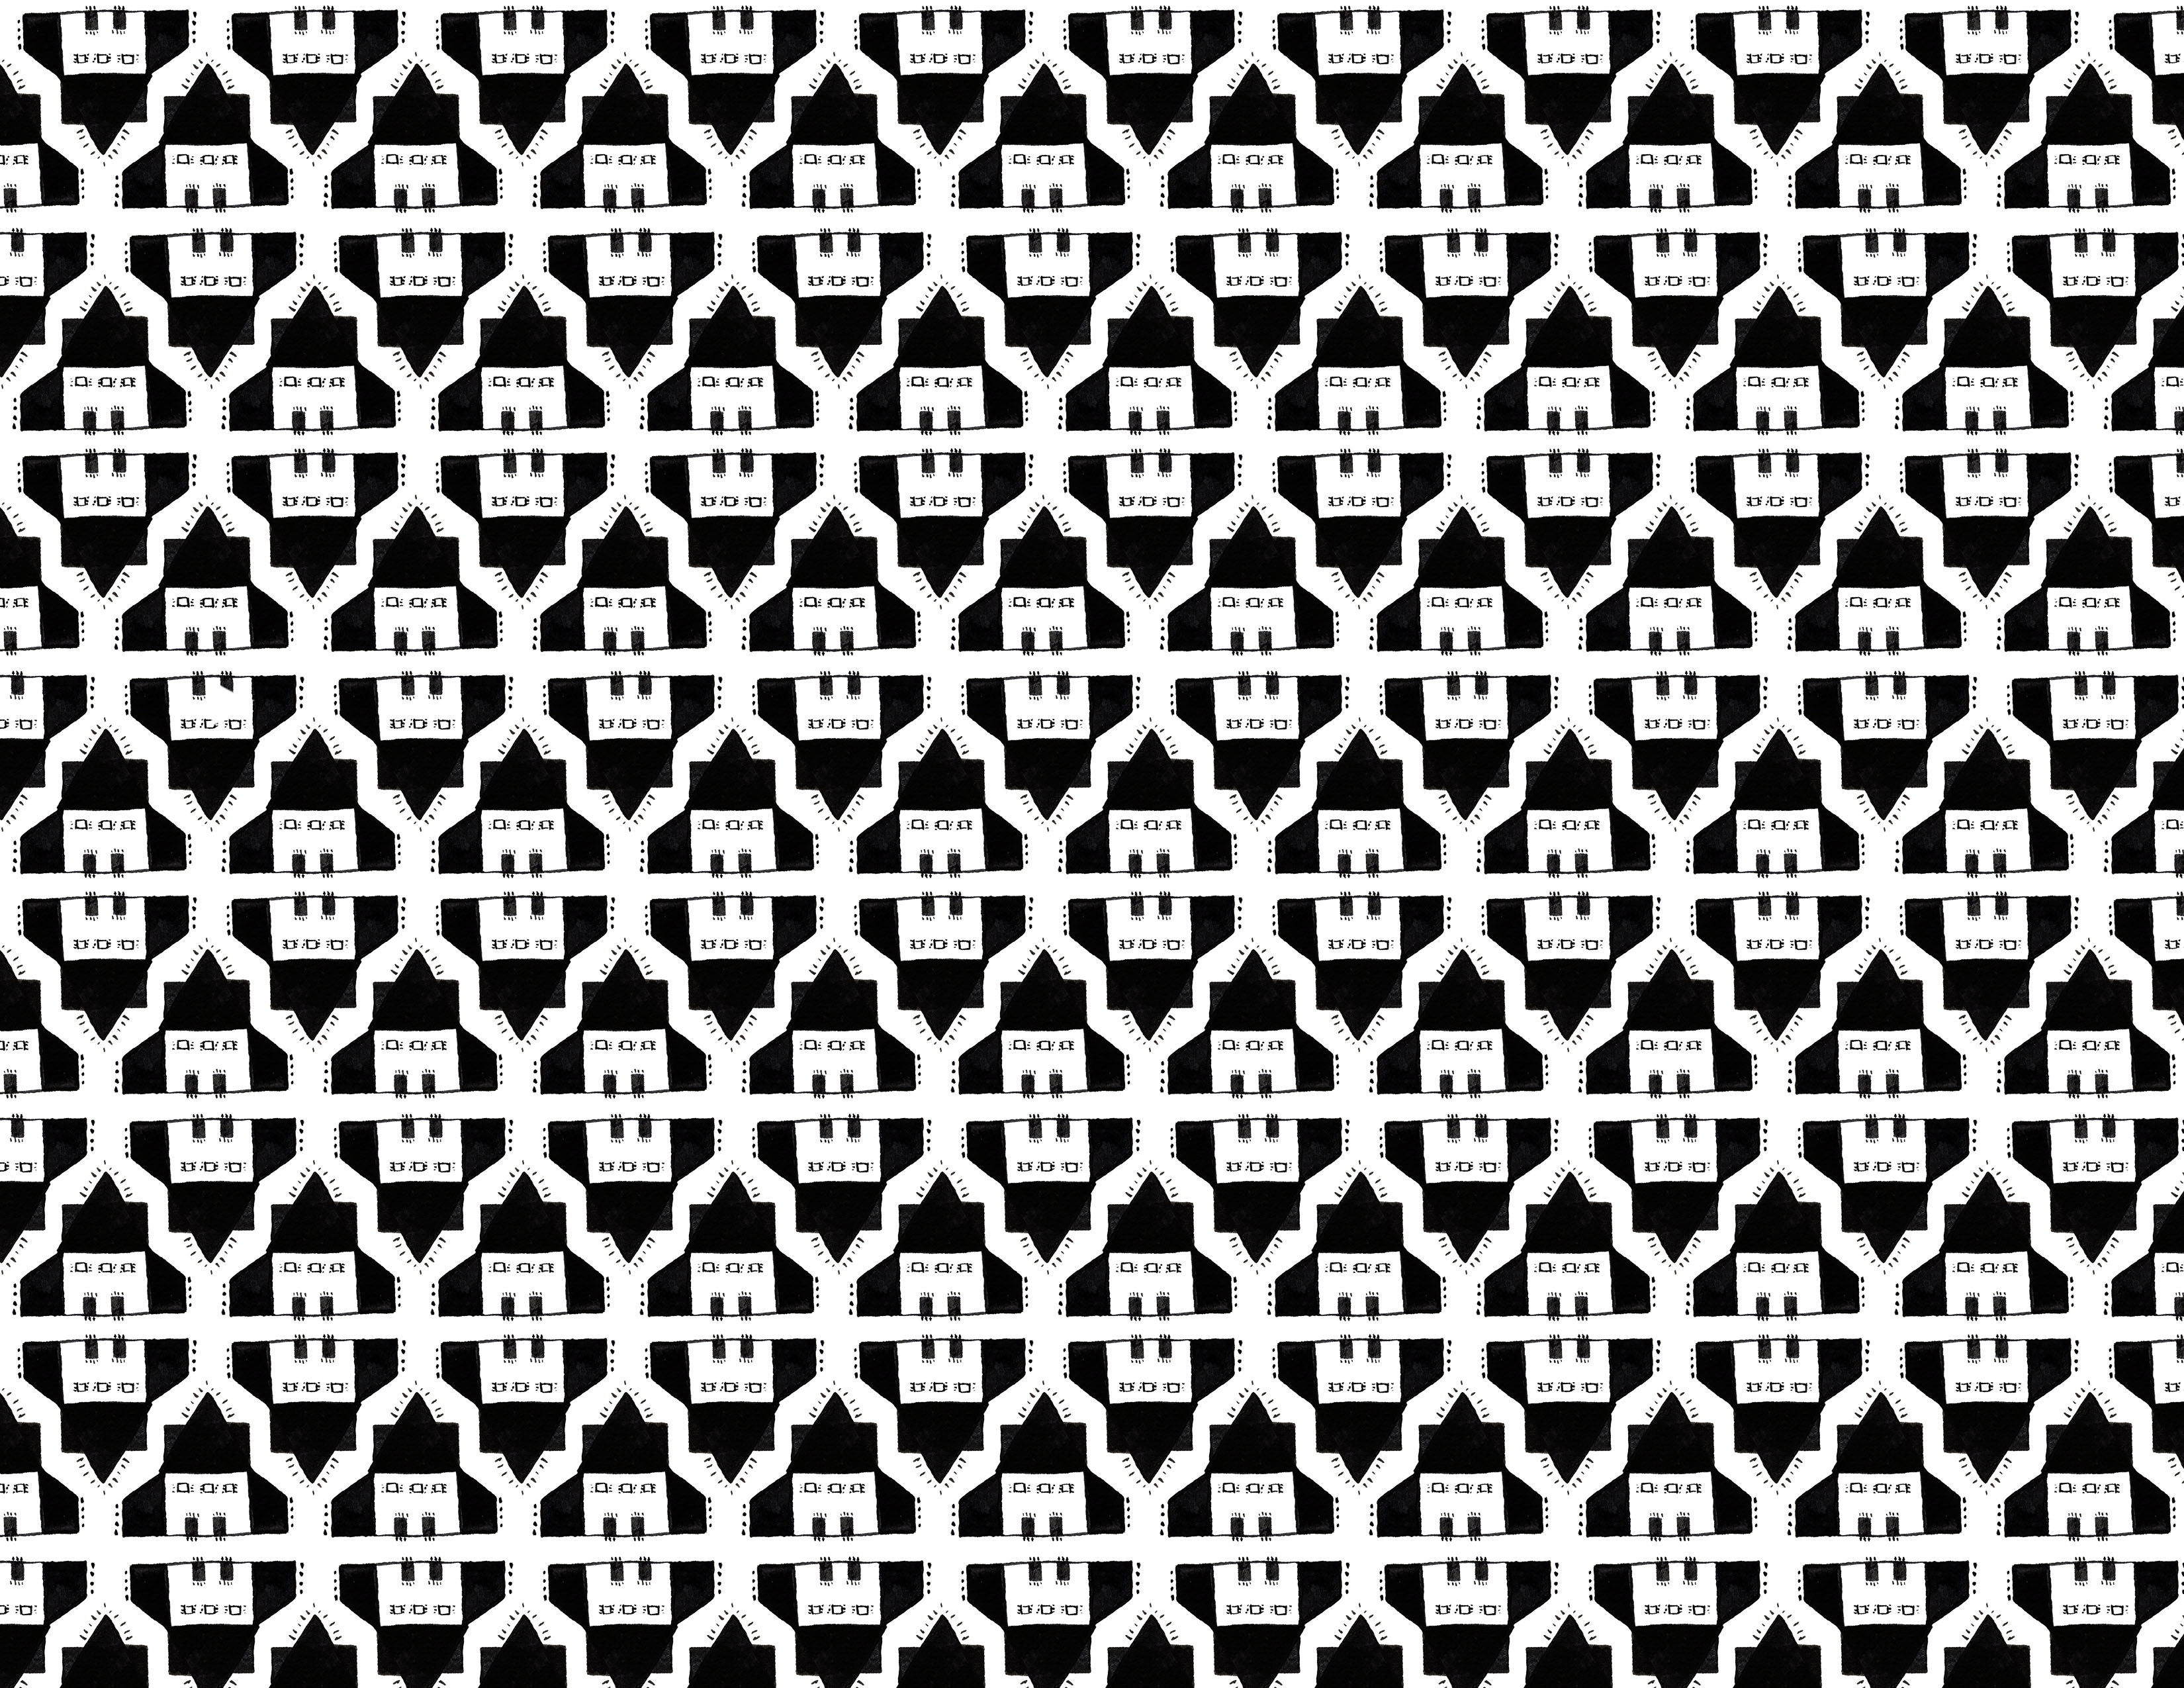 black home pattern.jpg